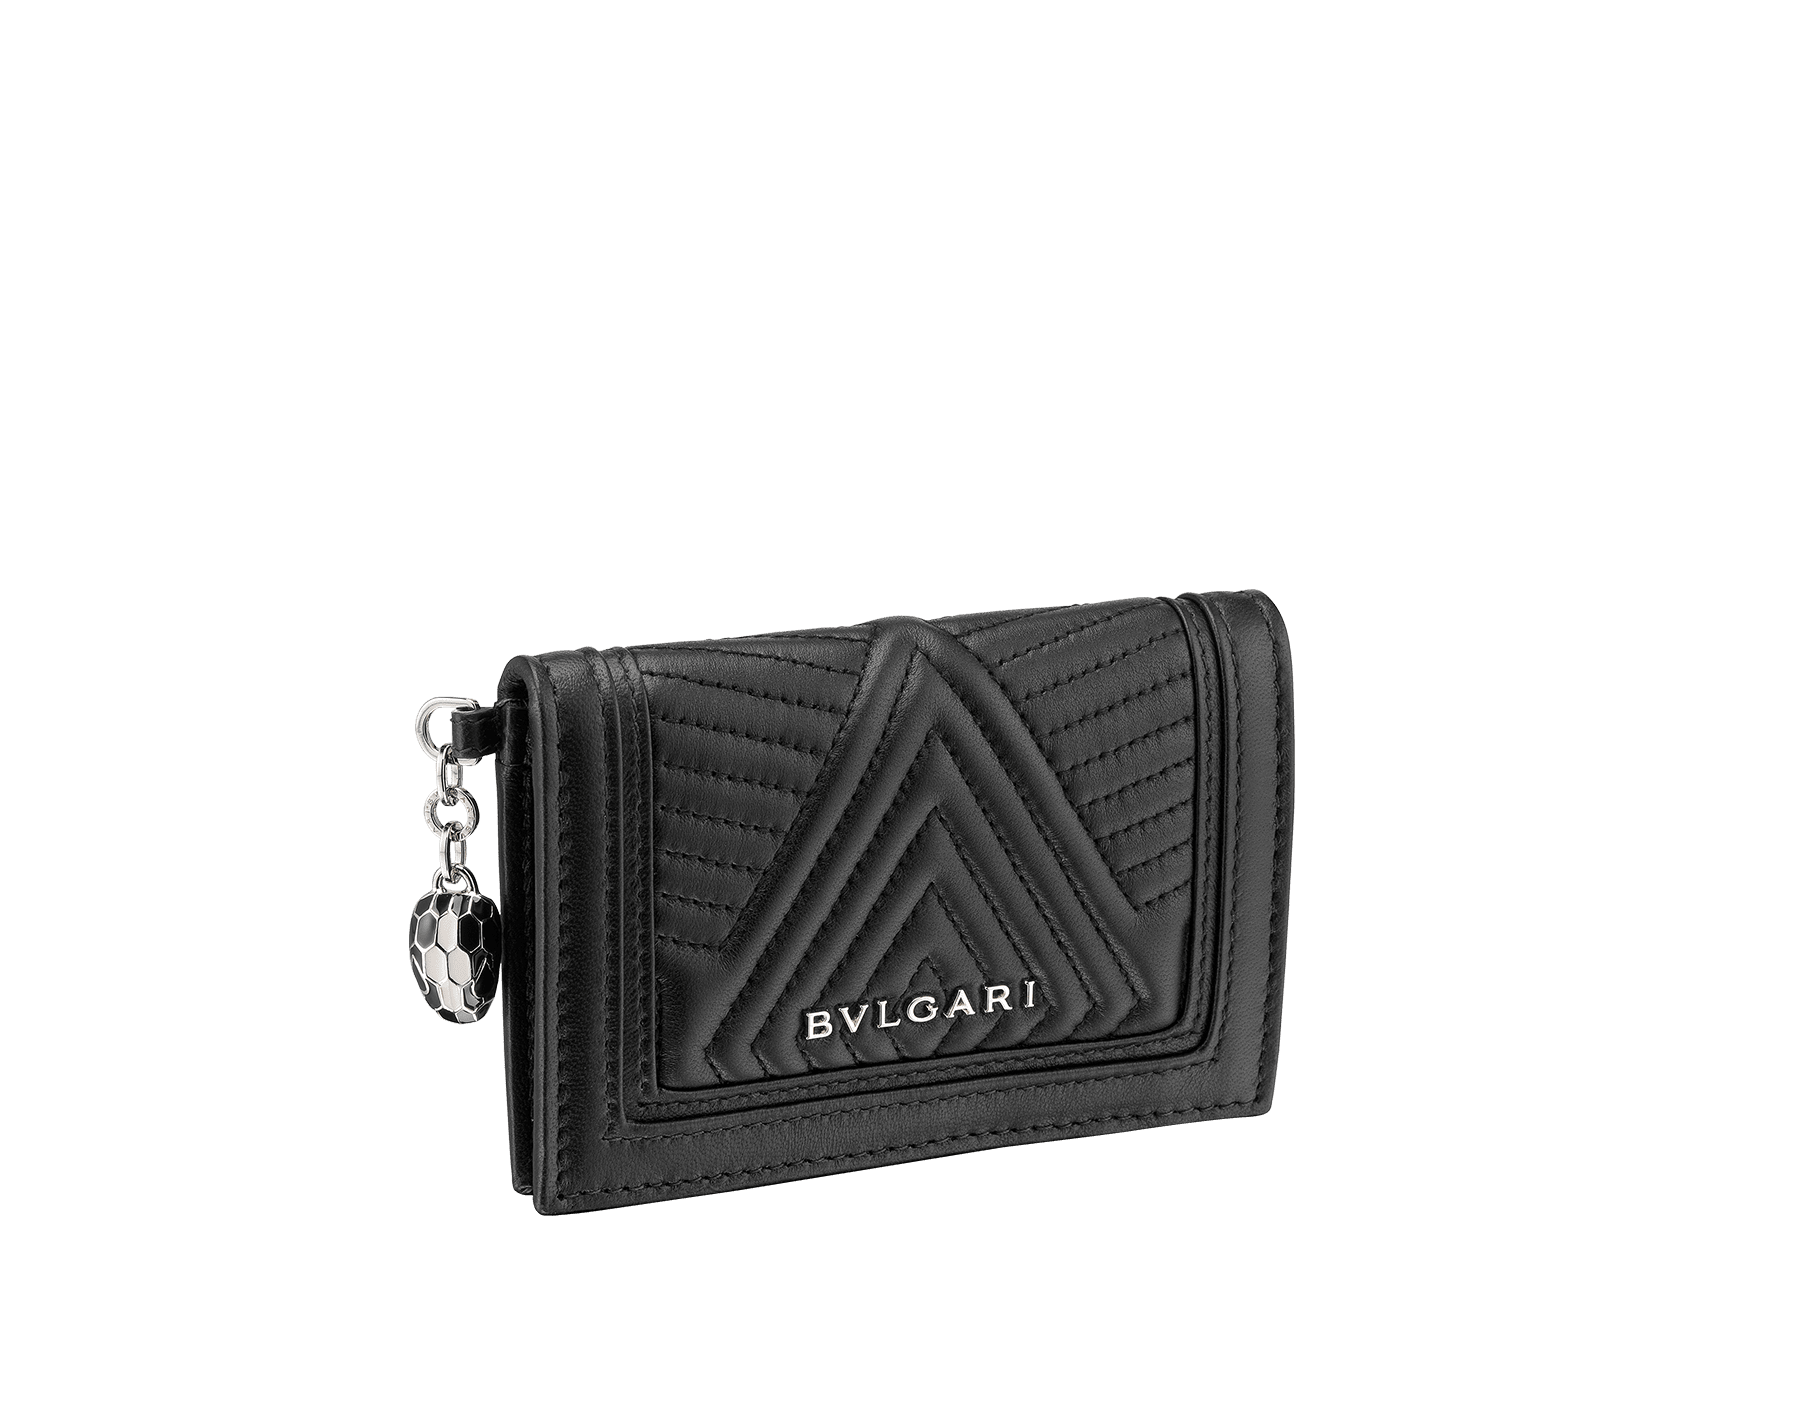 Serpenti Diamond Blast folded credit card holder in black quilted nappa leather. Iconic snakehead charm in black and white enamel, with black enamel eyes. 287578 image 1